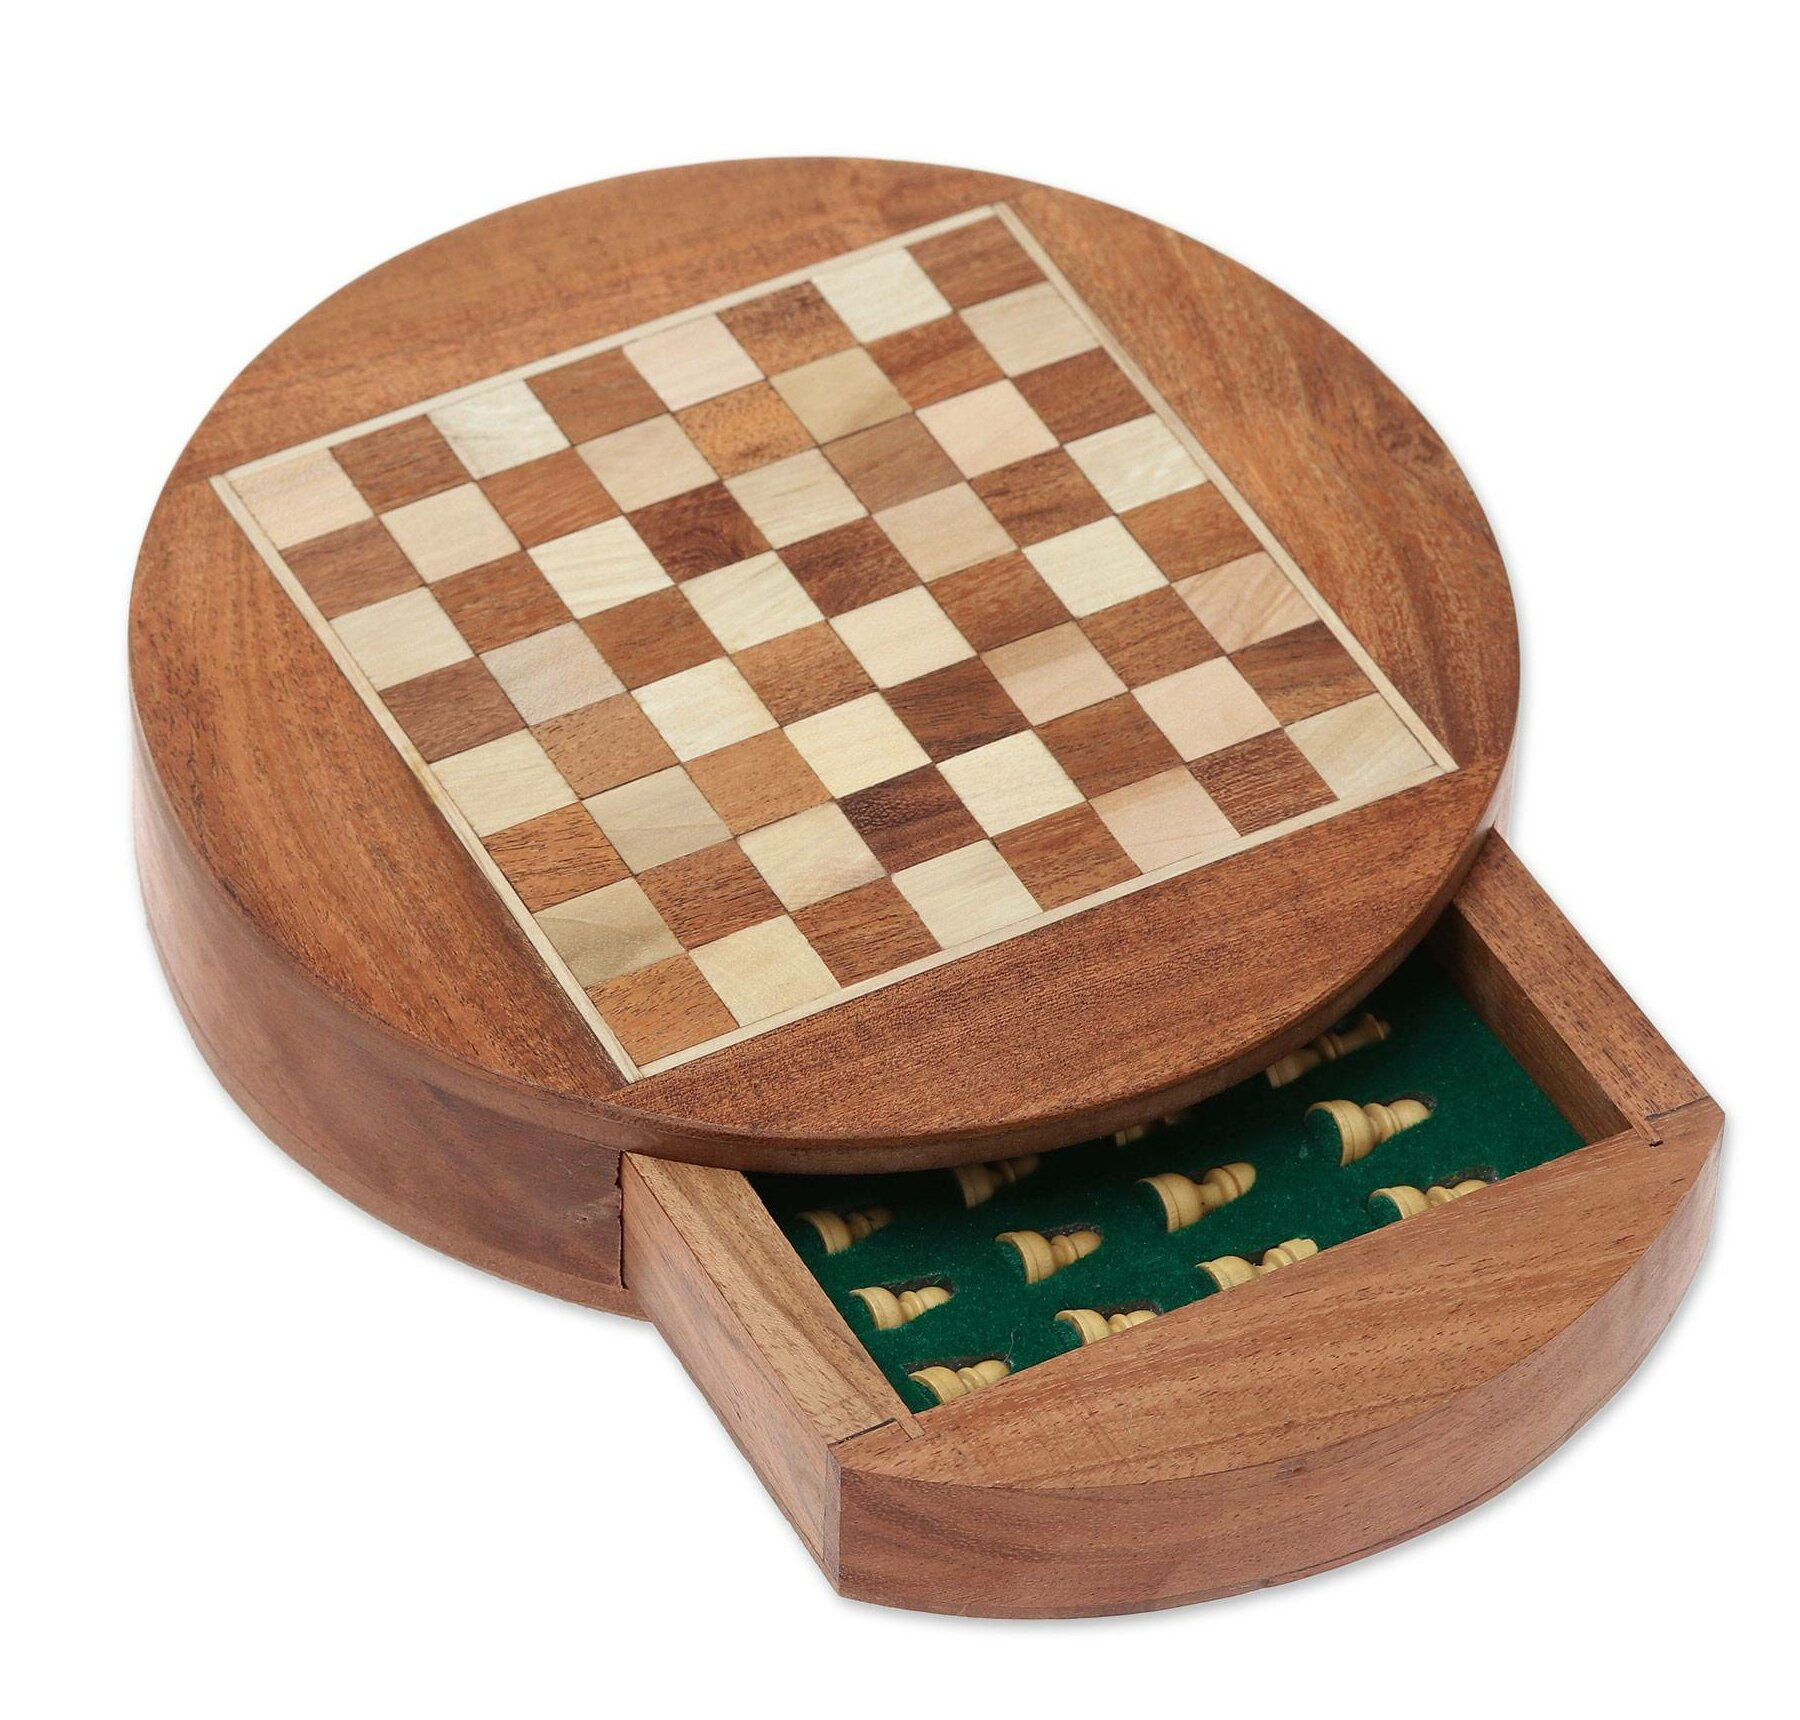 Bloomsbury Market Cochranville Brain Power Wood Chess Wayfair Ca